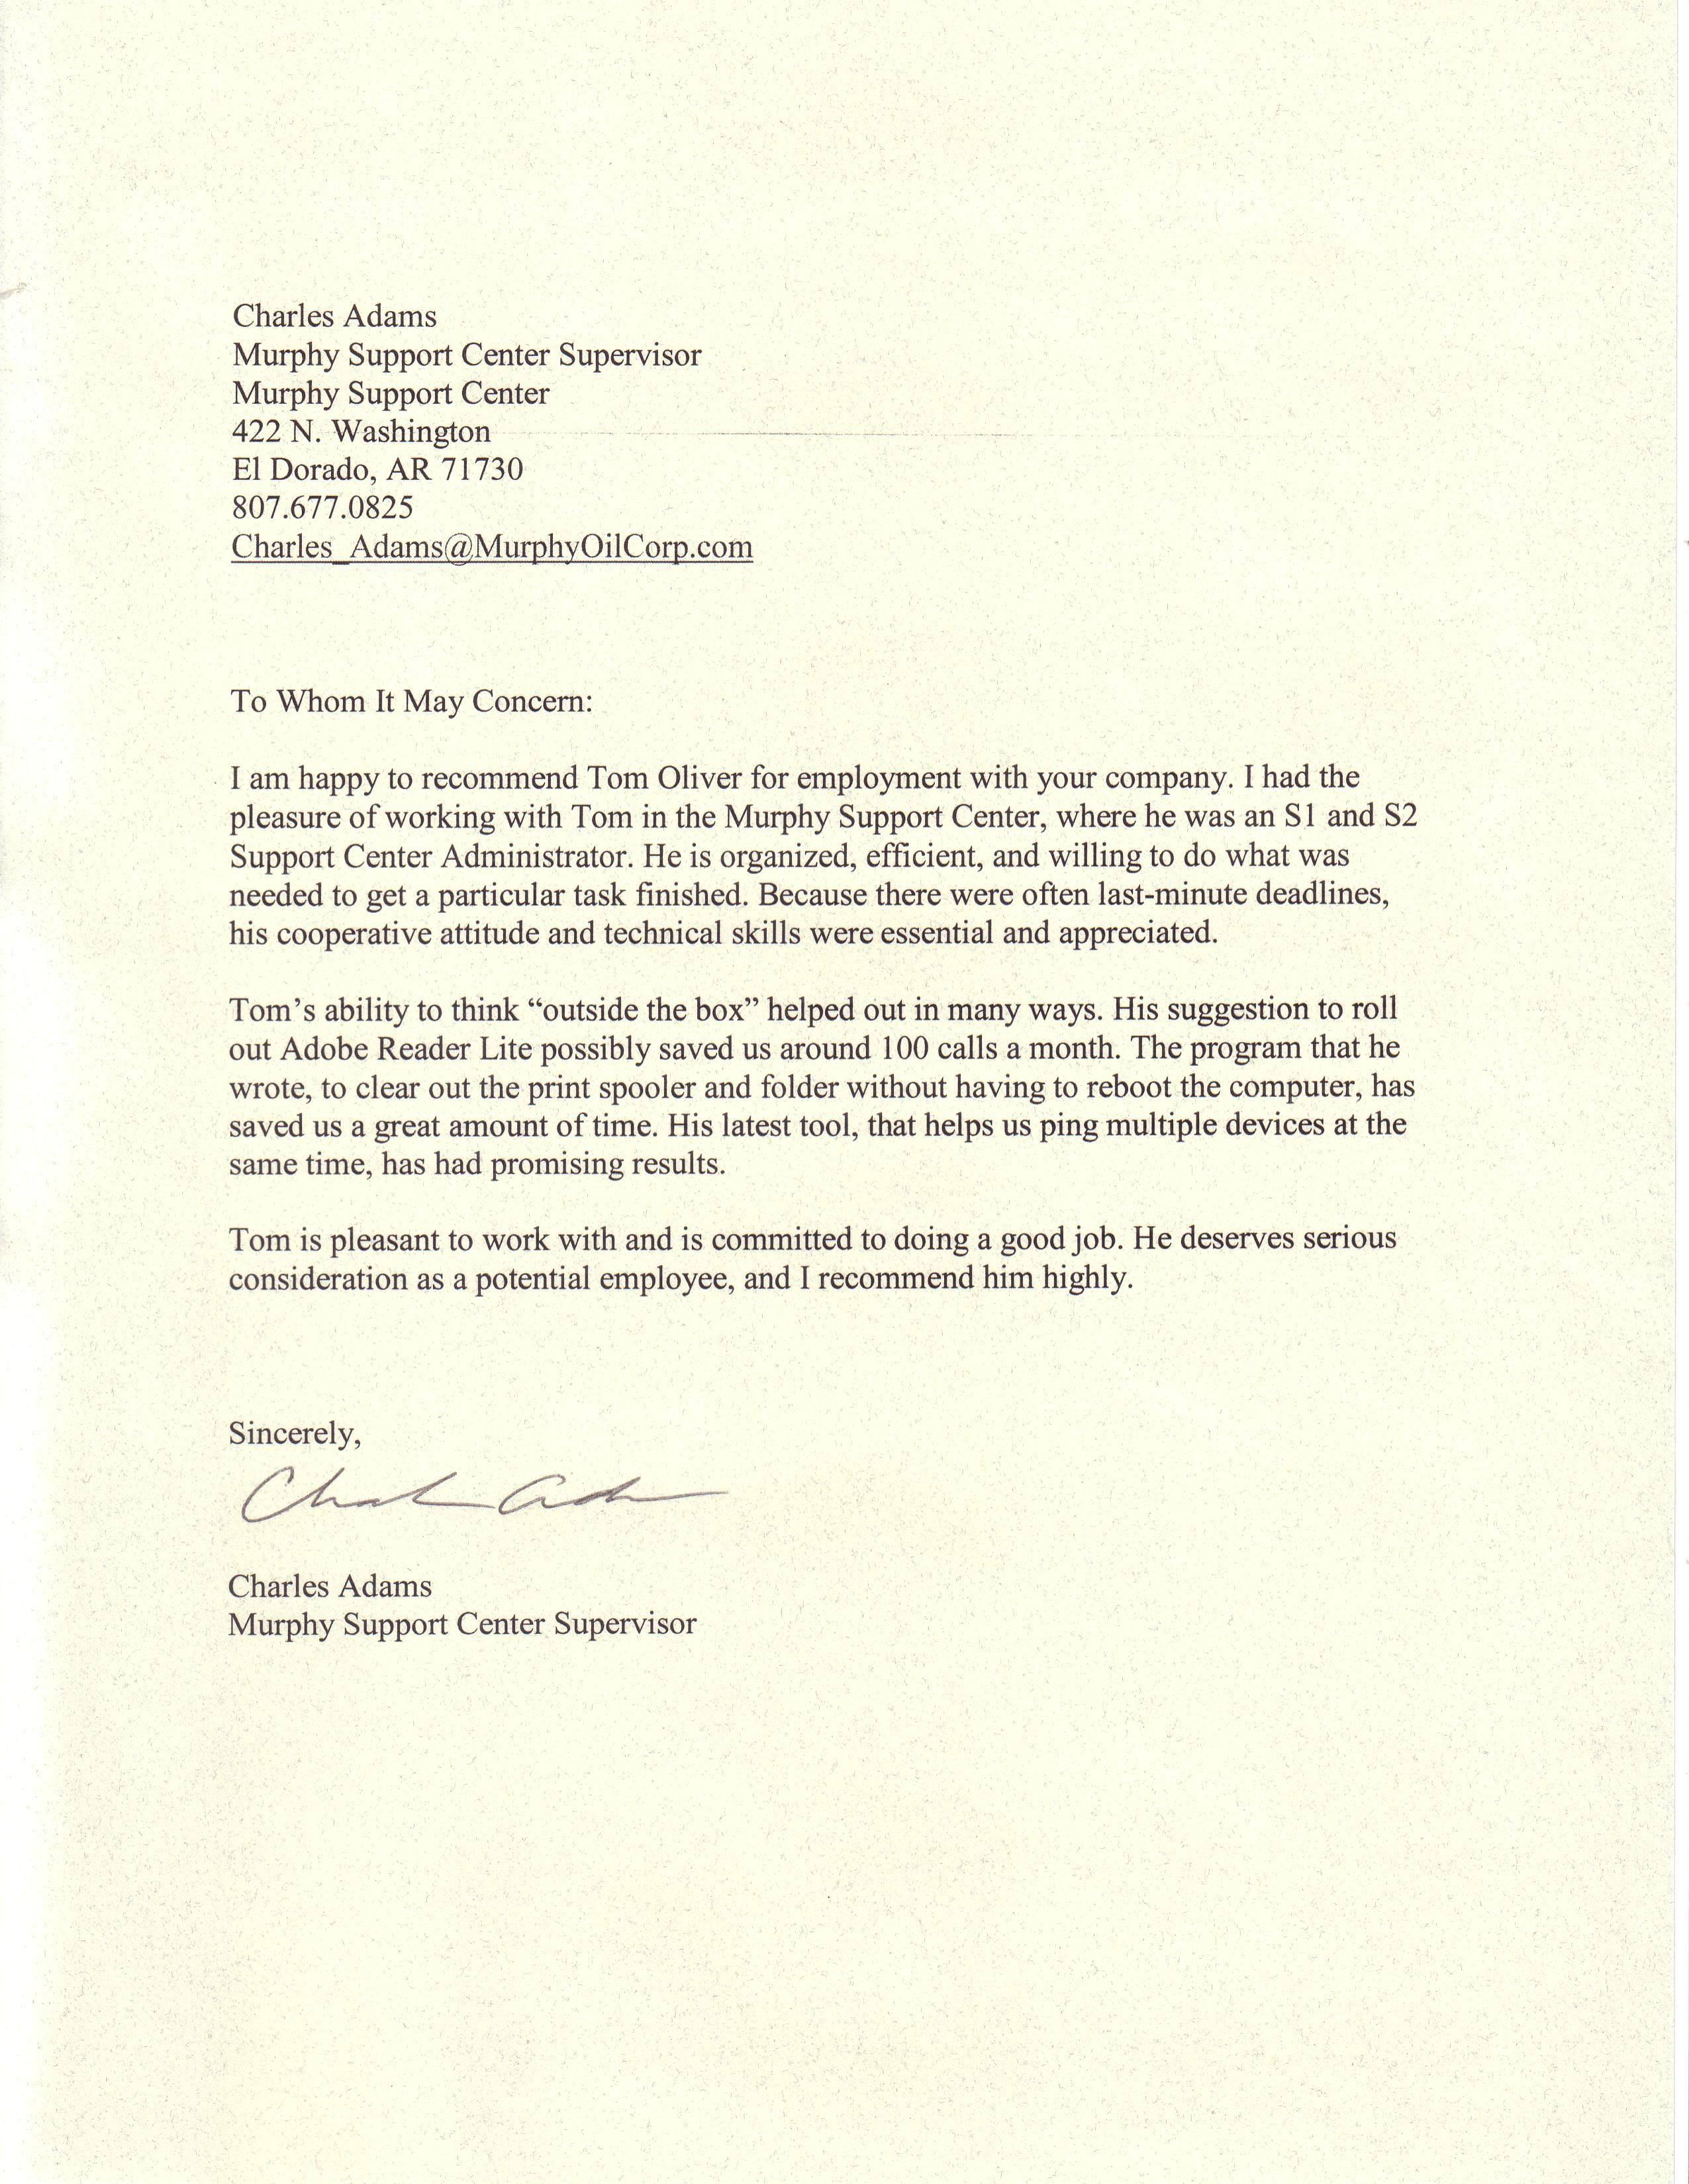 Sample professional reference letter example letters of sample professional reference letter example spiritdancerdesigns Gallery